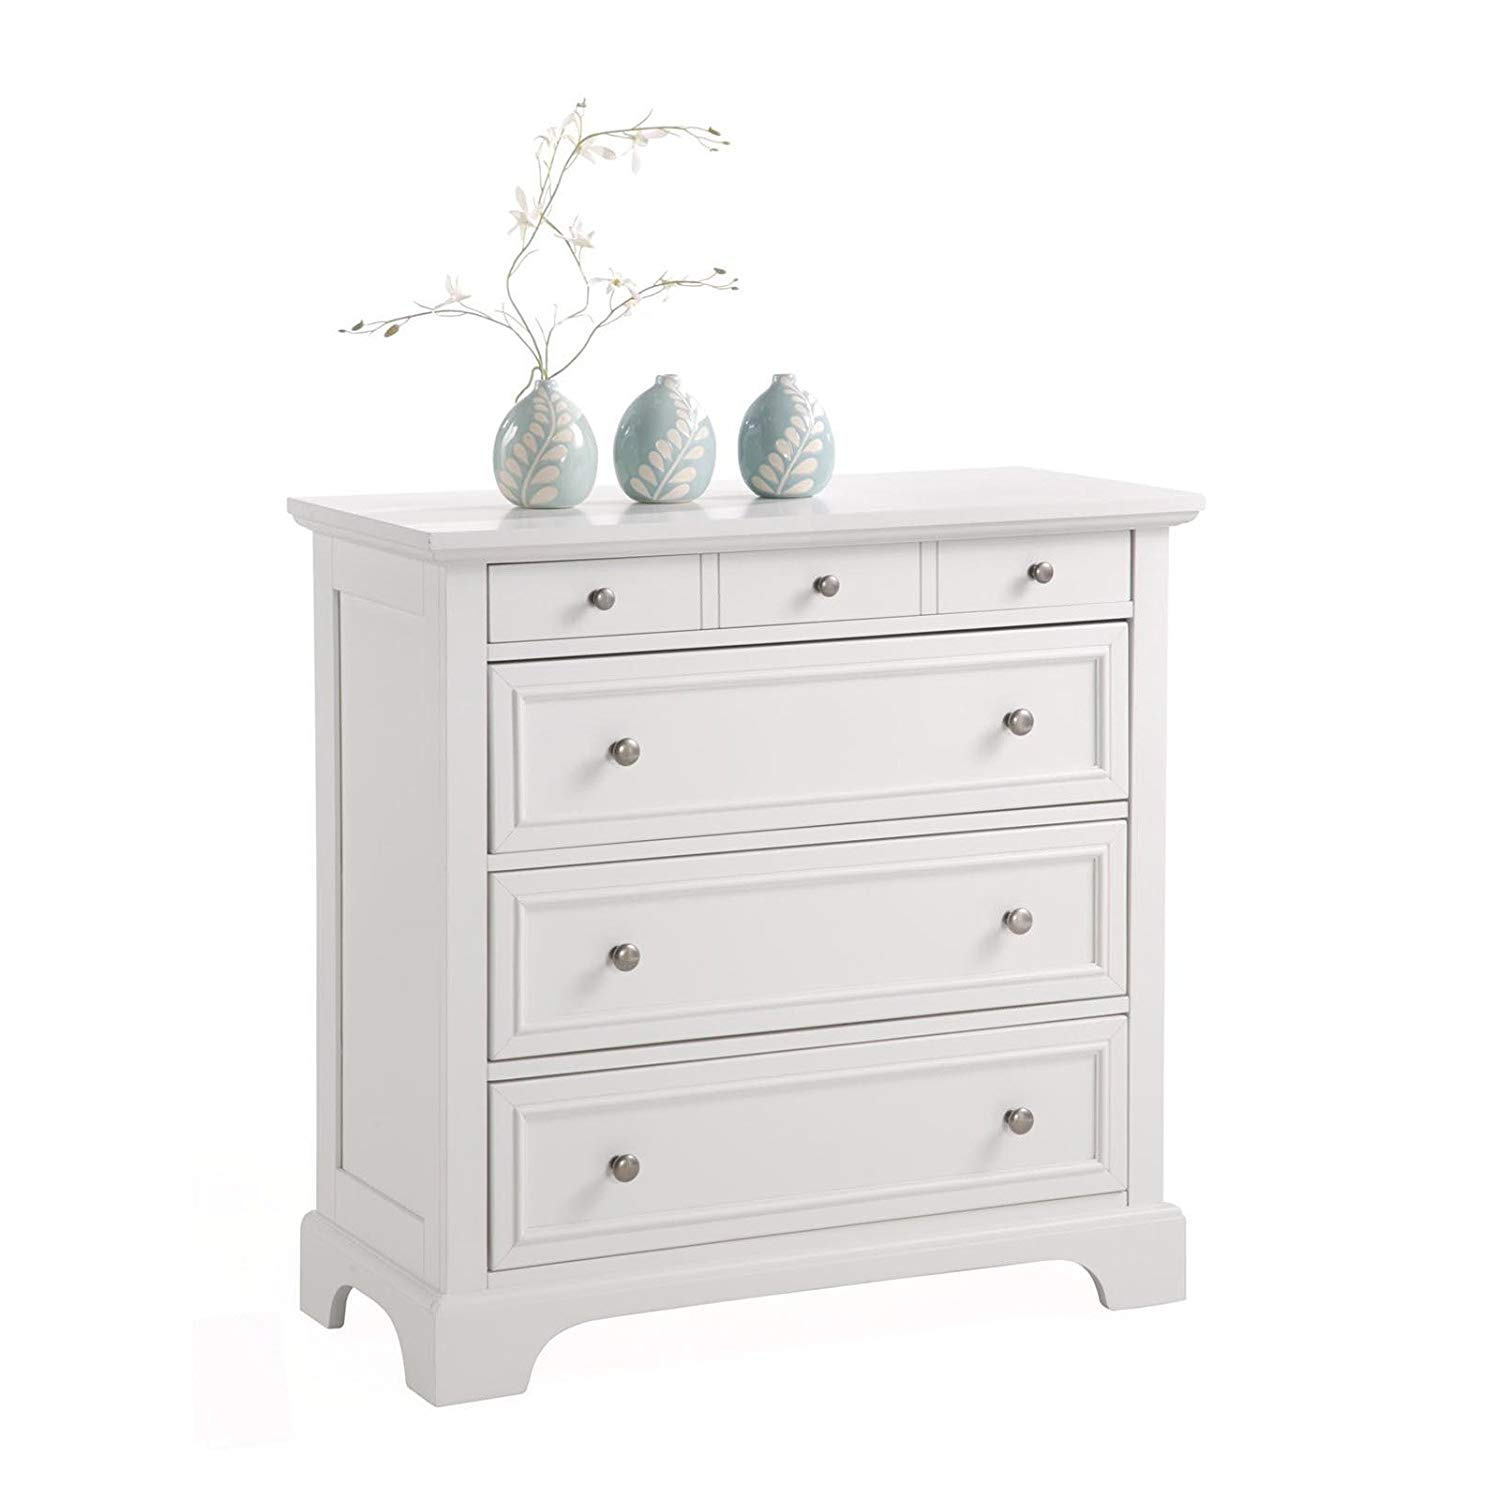 Elegant White Colored Drawer Chest With A Contemporary Design, Rich White Finish, 4 Large Drawers, Poplar Hardwood And Engineered Wood Construction, Adds A Touch Of Elegance In Any Room